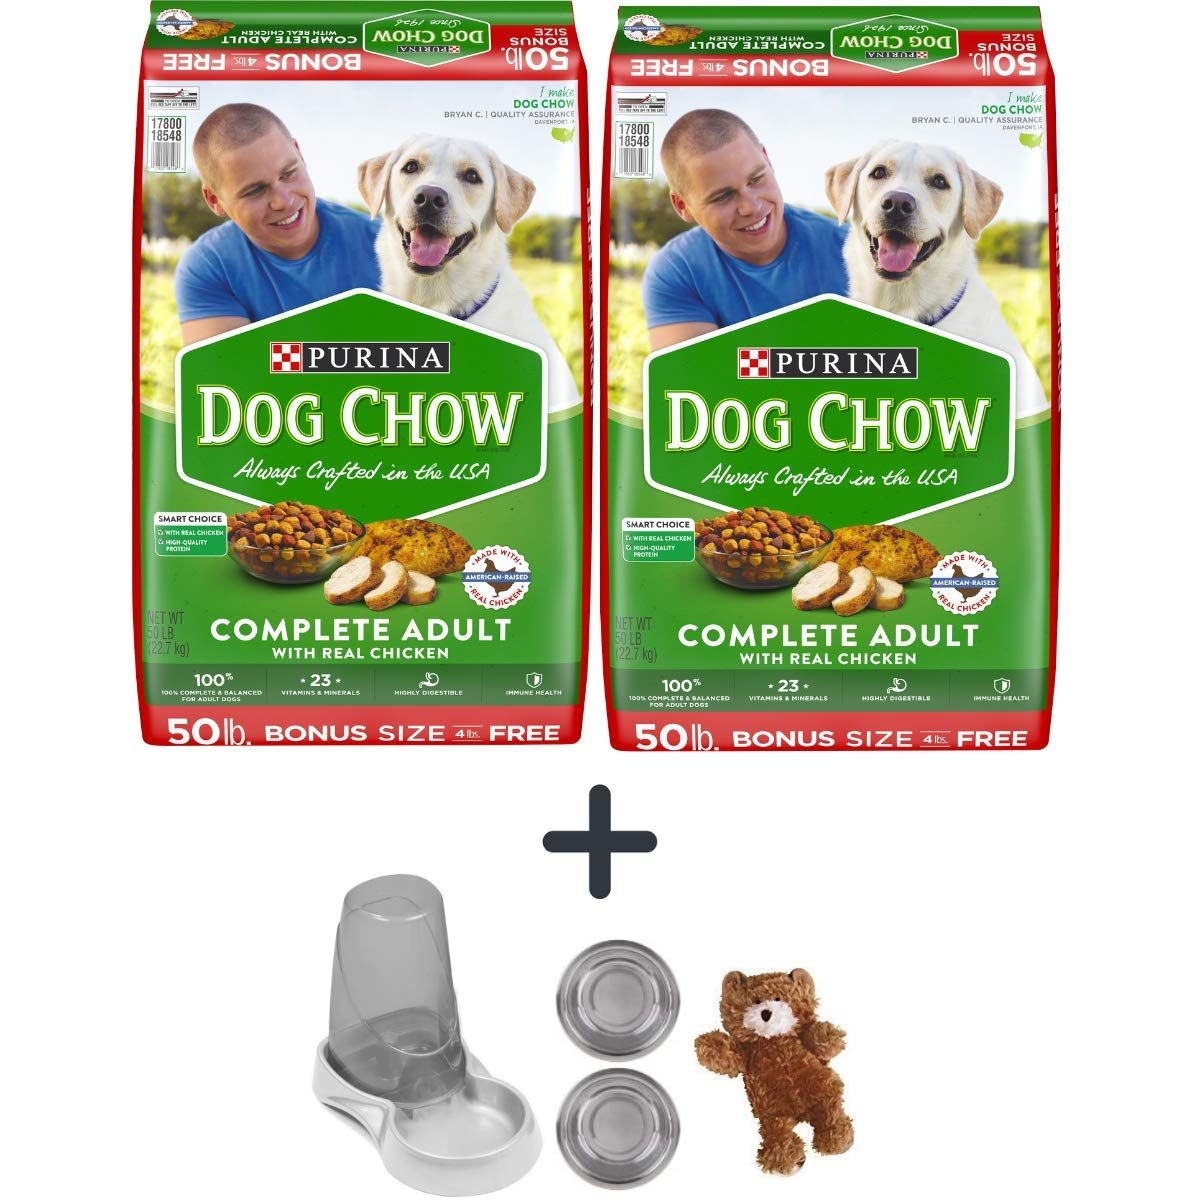 Purina Pack Of 2 50 Lbs Dog Chow Complete Adult Chicken Dry Dog